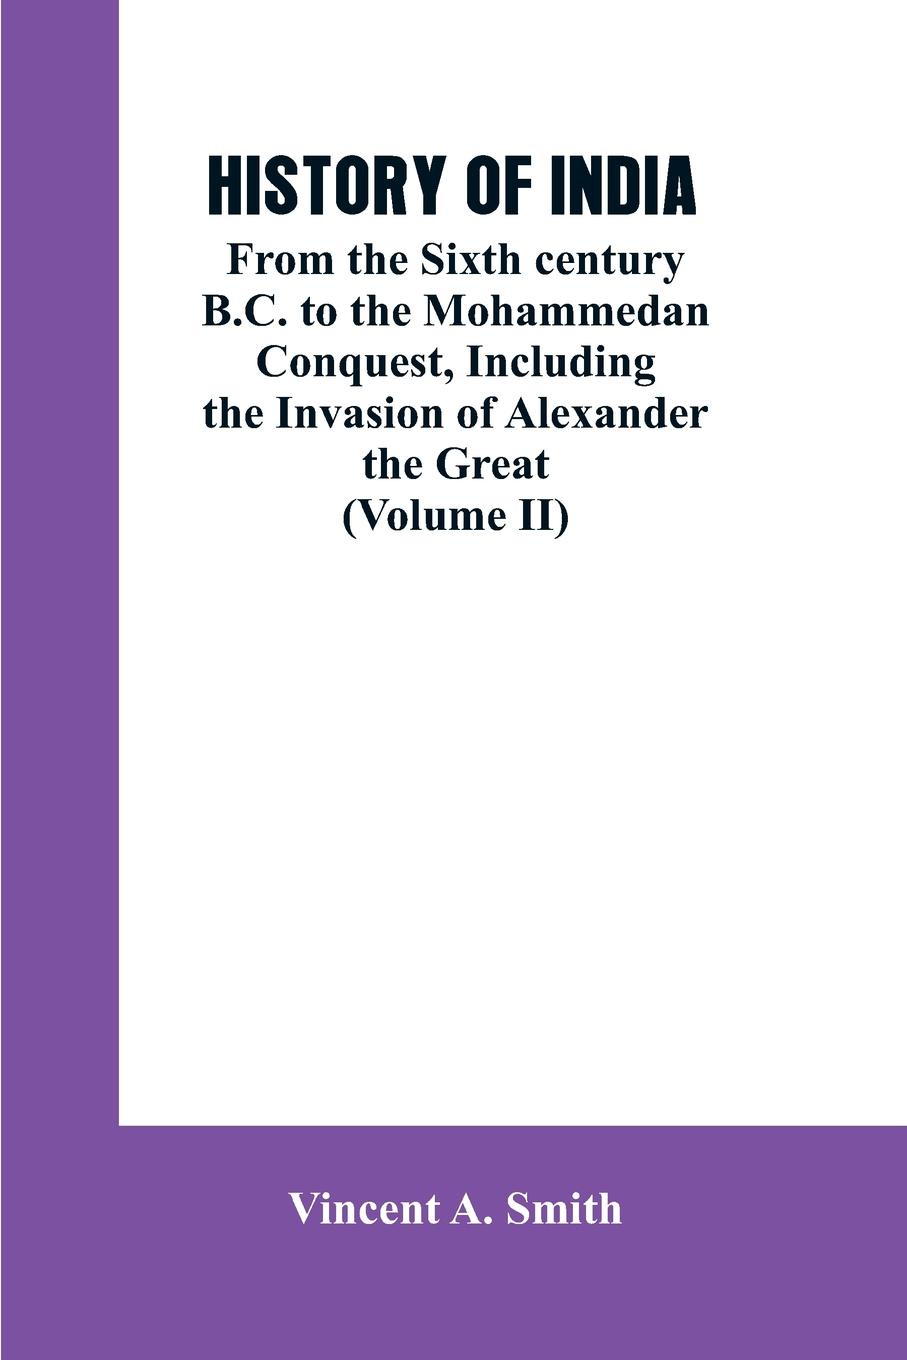 Vincent A. Smith HISTORY OF INDIA. From the Sixth century B.C. to the mohammedon conquest, including the invasion of Alexander the great (Volume II) alexander cunningham archeological survey of india volume i